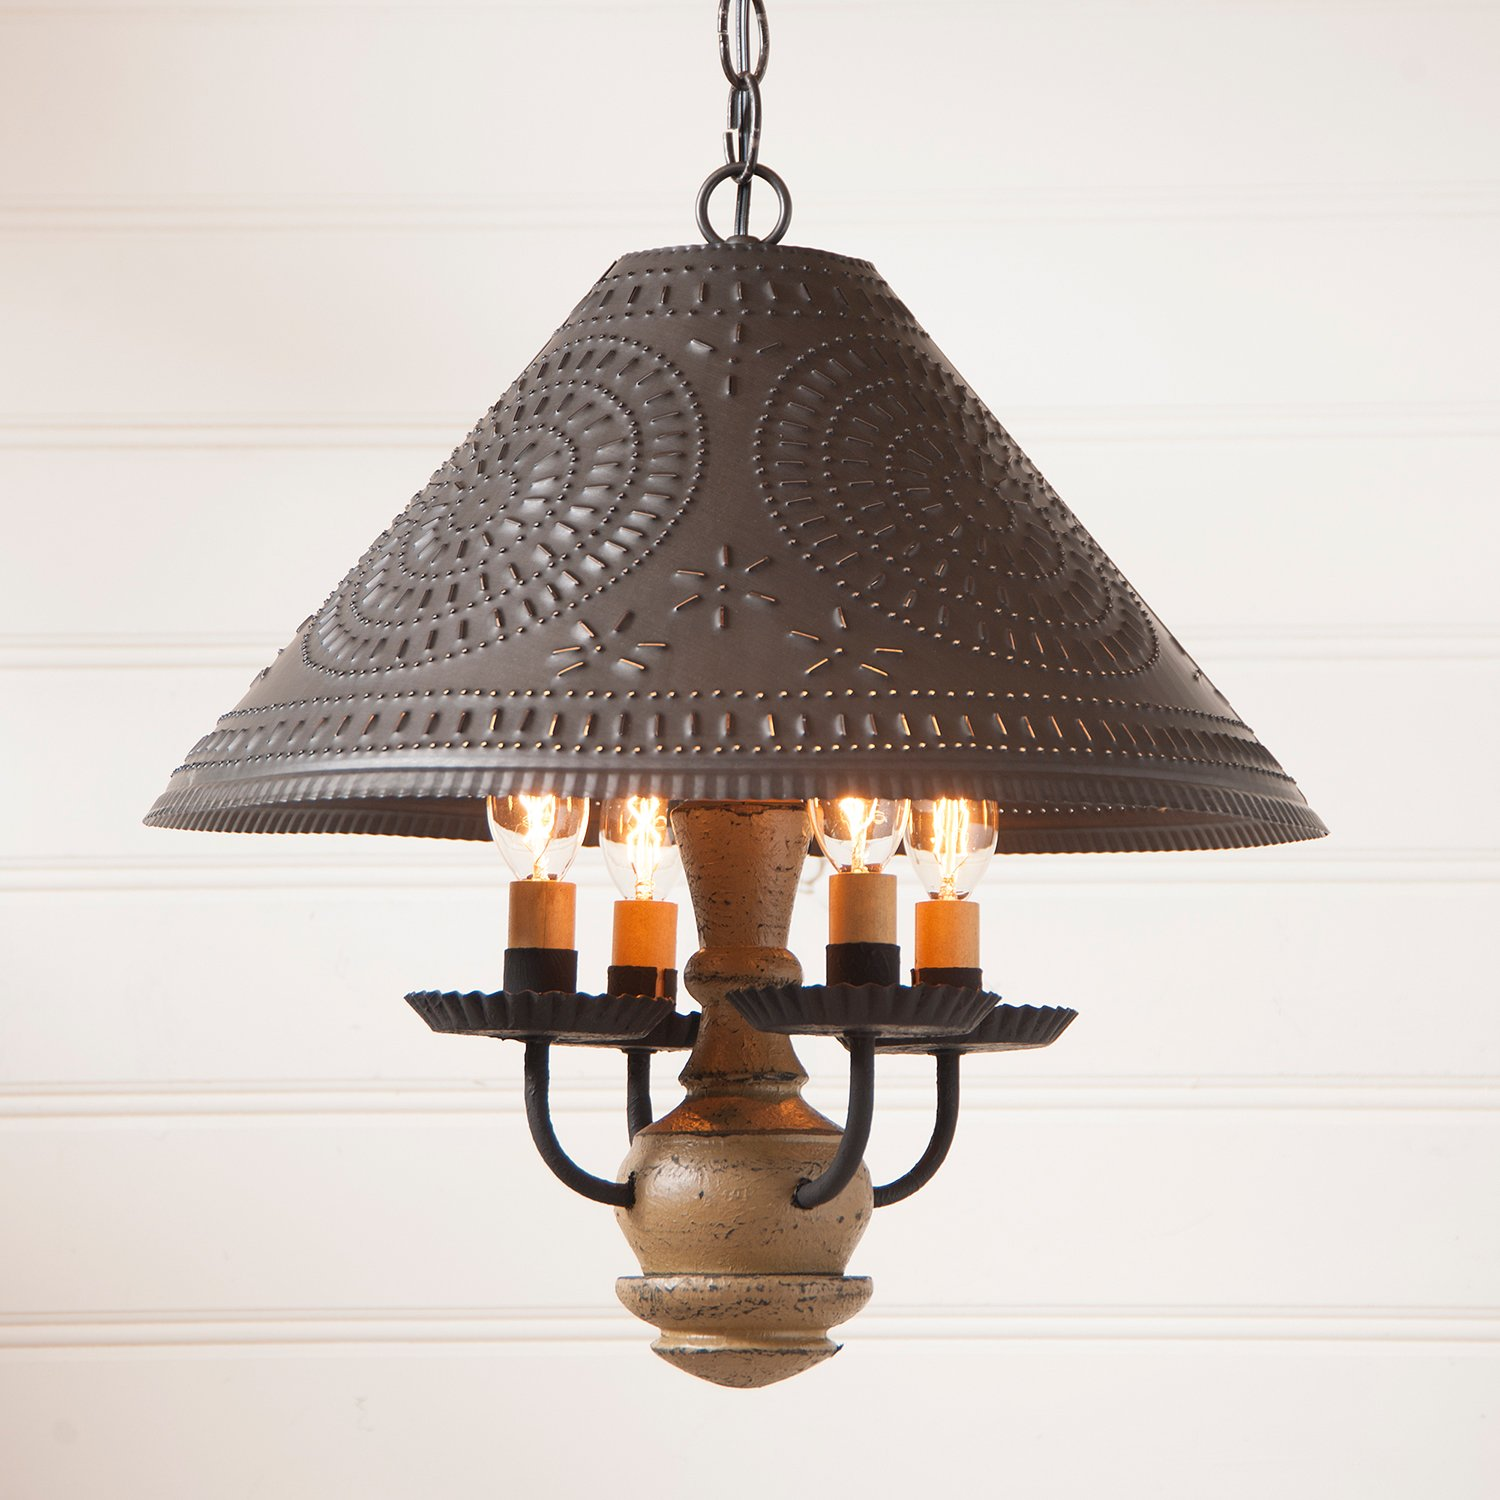 Homespun Shade Light in Pearwood by Irvin's Country Tinware